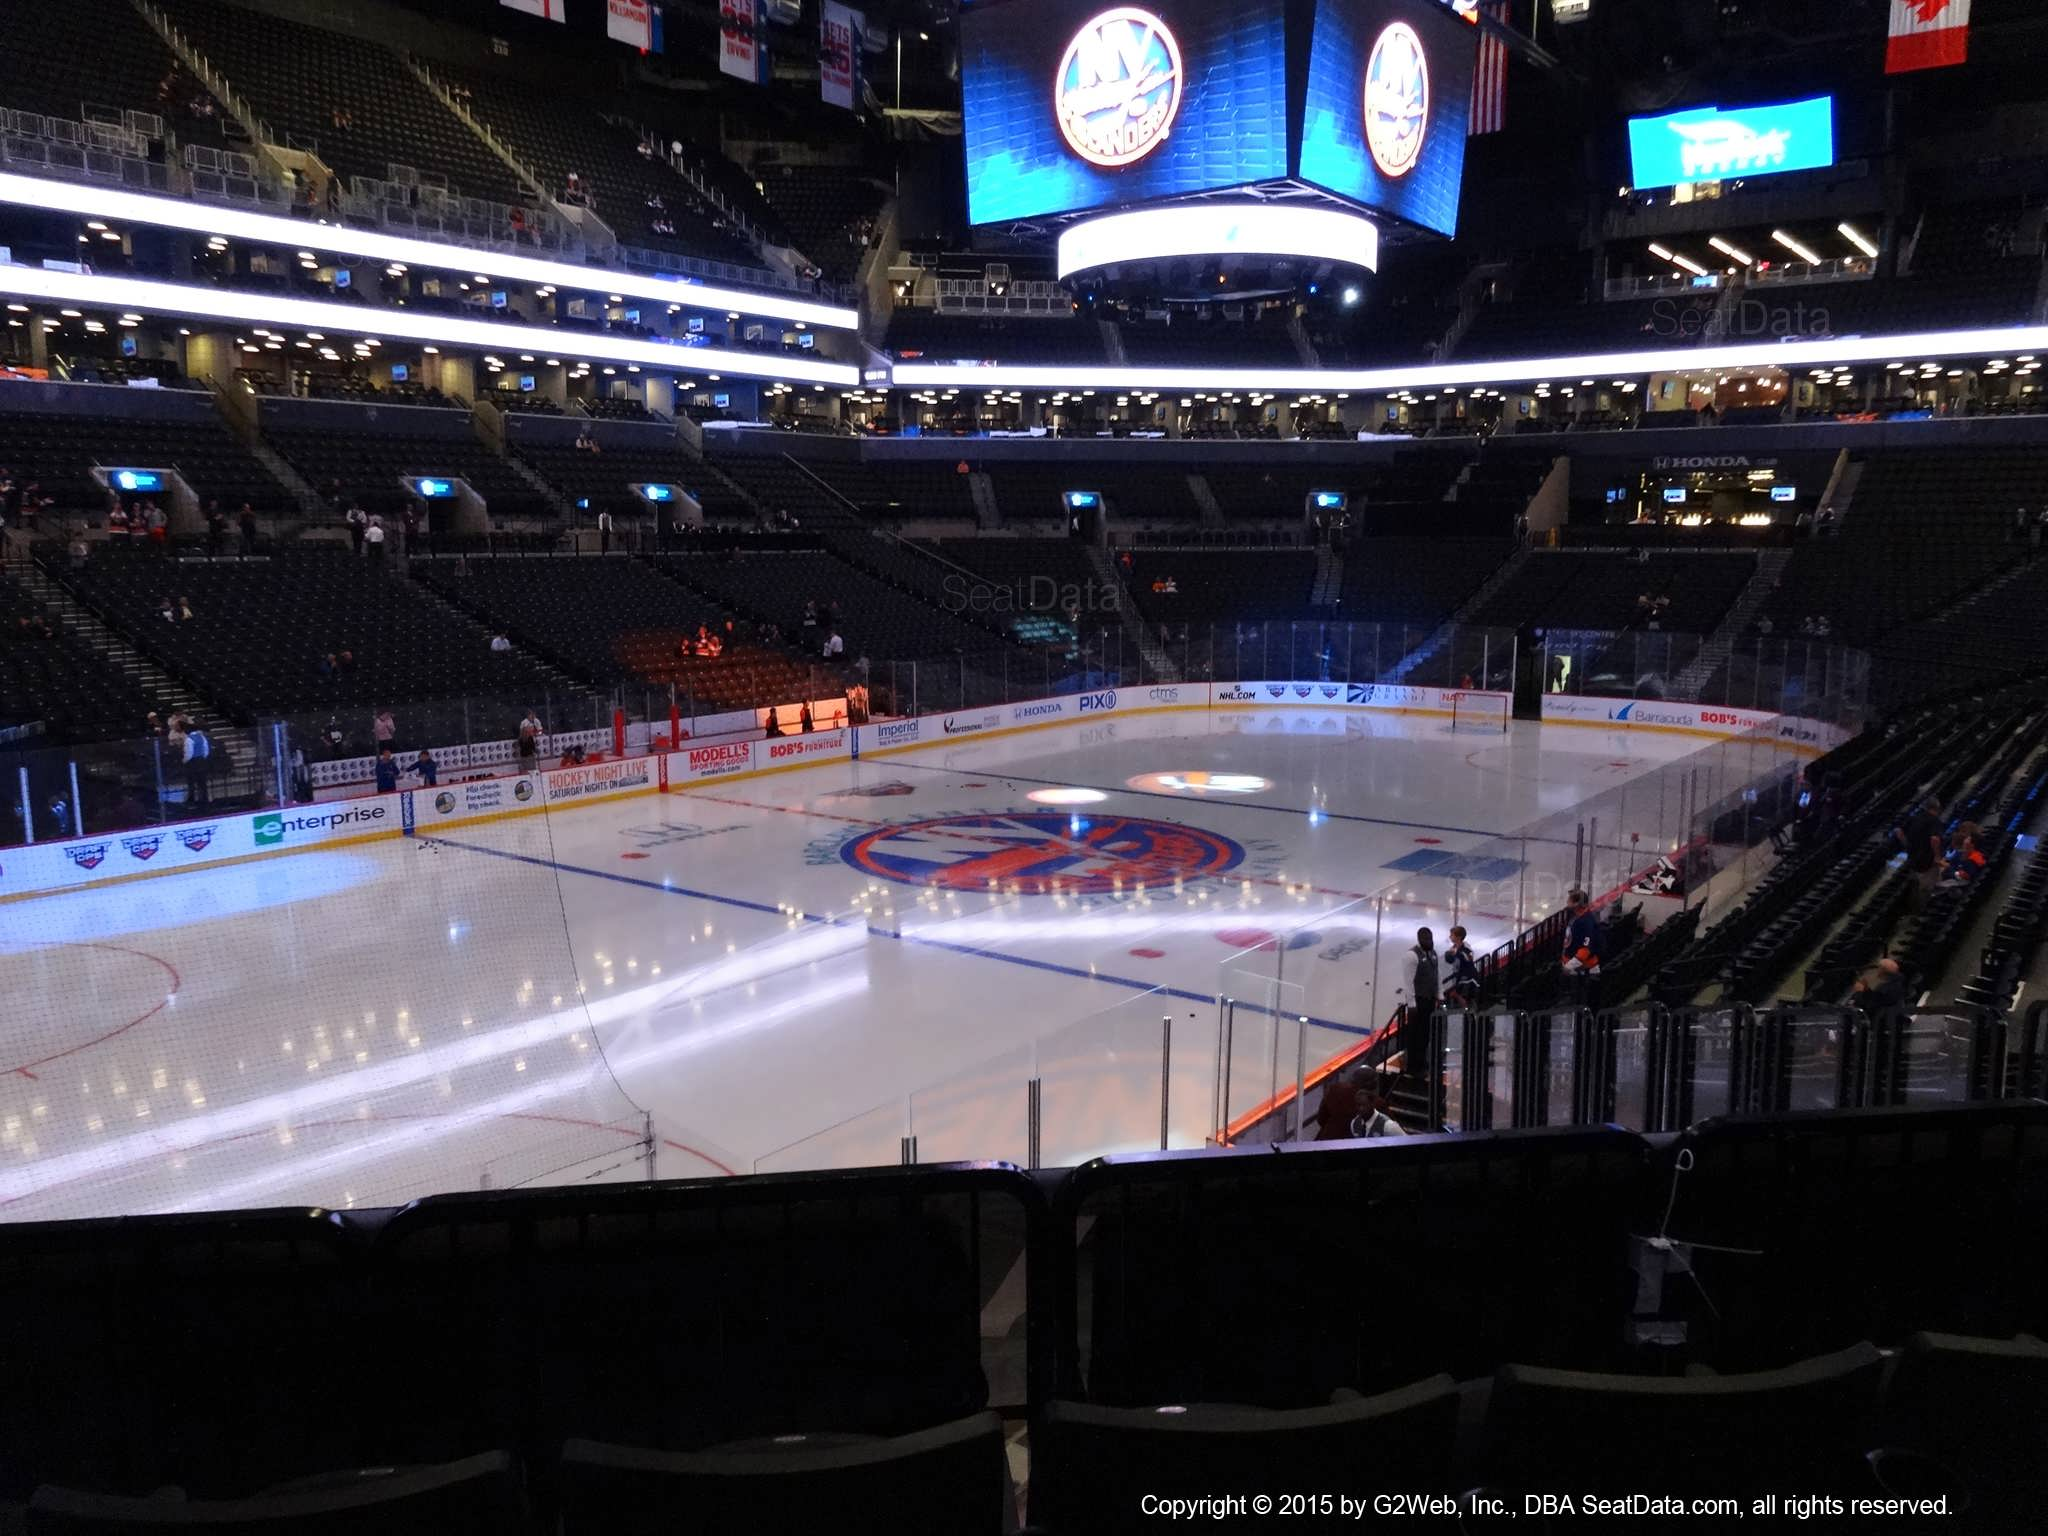 Seat View from Section 29 at the Barclays Center, home of the New York Islanders